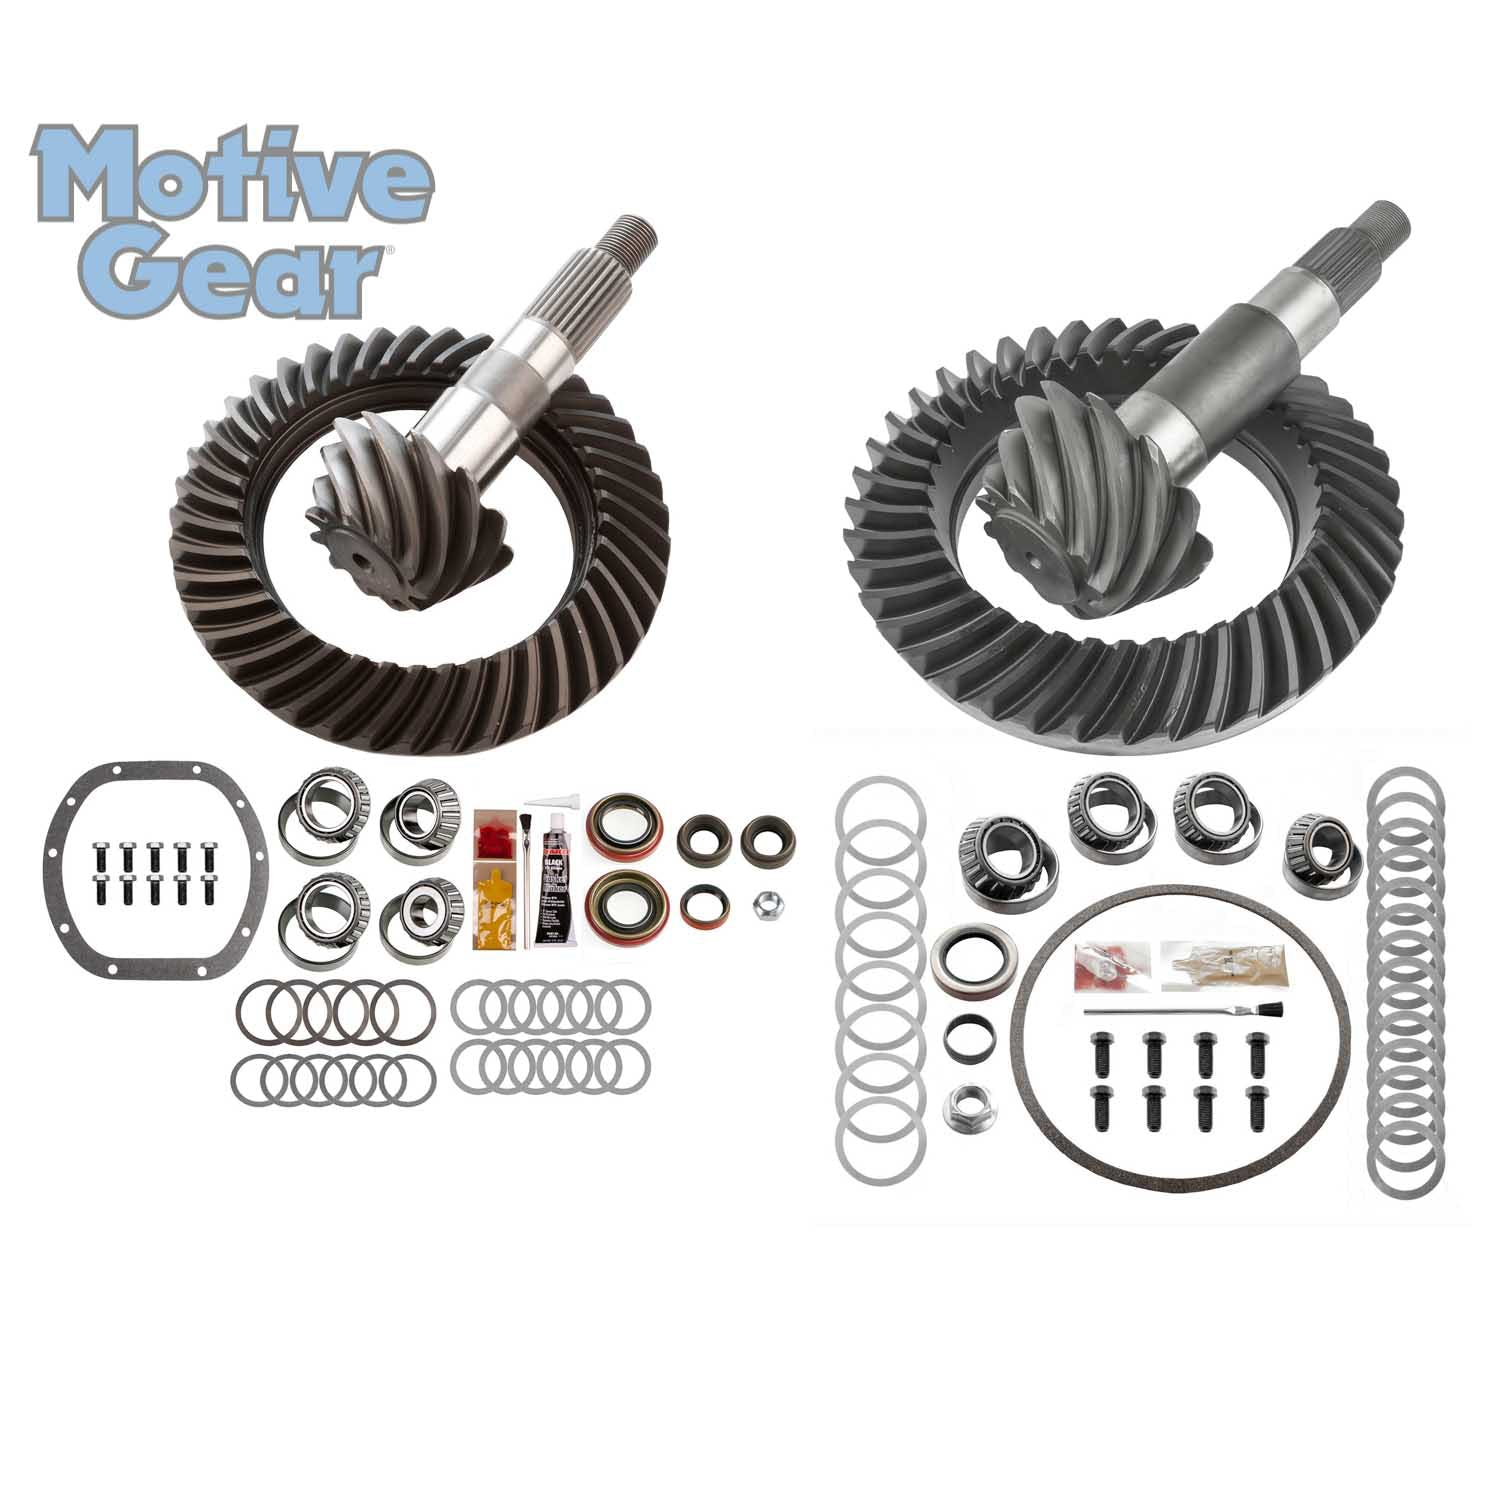 Motive Gear Performance Differential MGK-110 Motive Gear-Differential Complete Ring and Pinion Kit-Jeep TJ-Front and Rear Differential Ring and Pinon Front and Rear Complete Kit